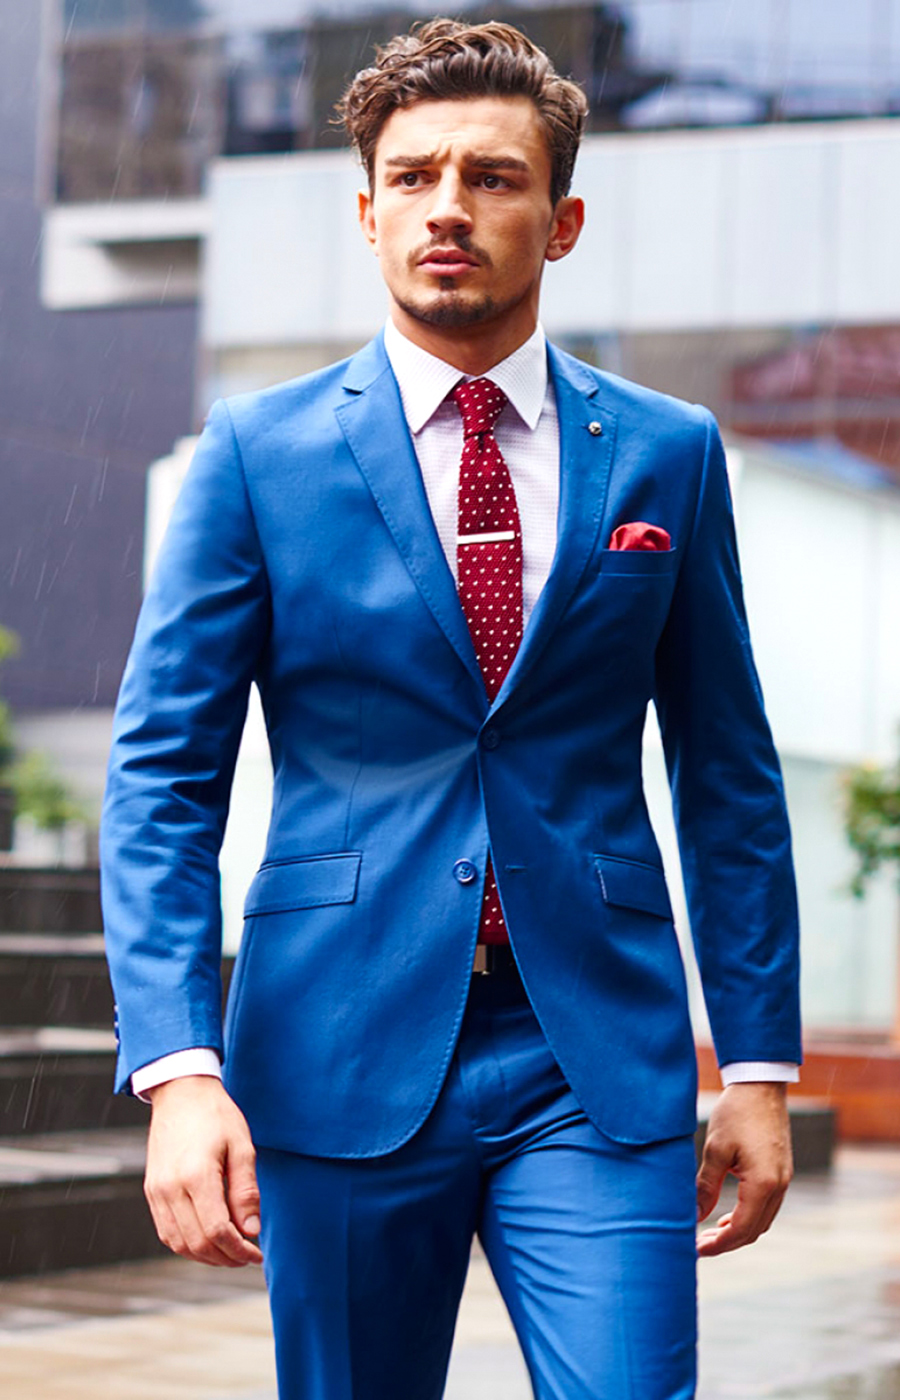 Blue suit matched with a red tie